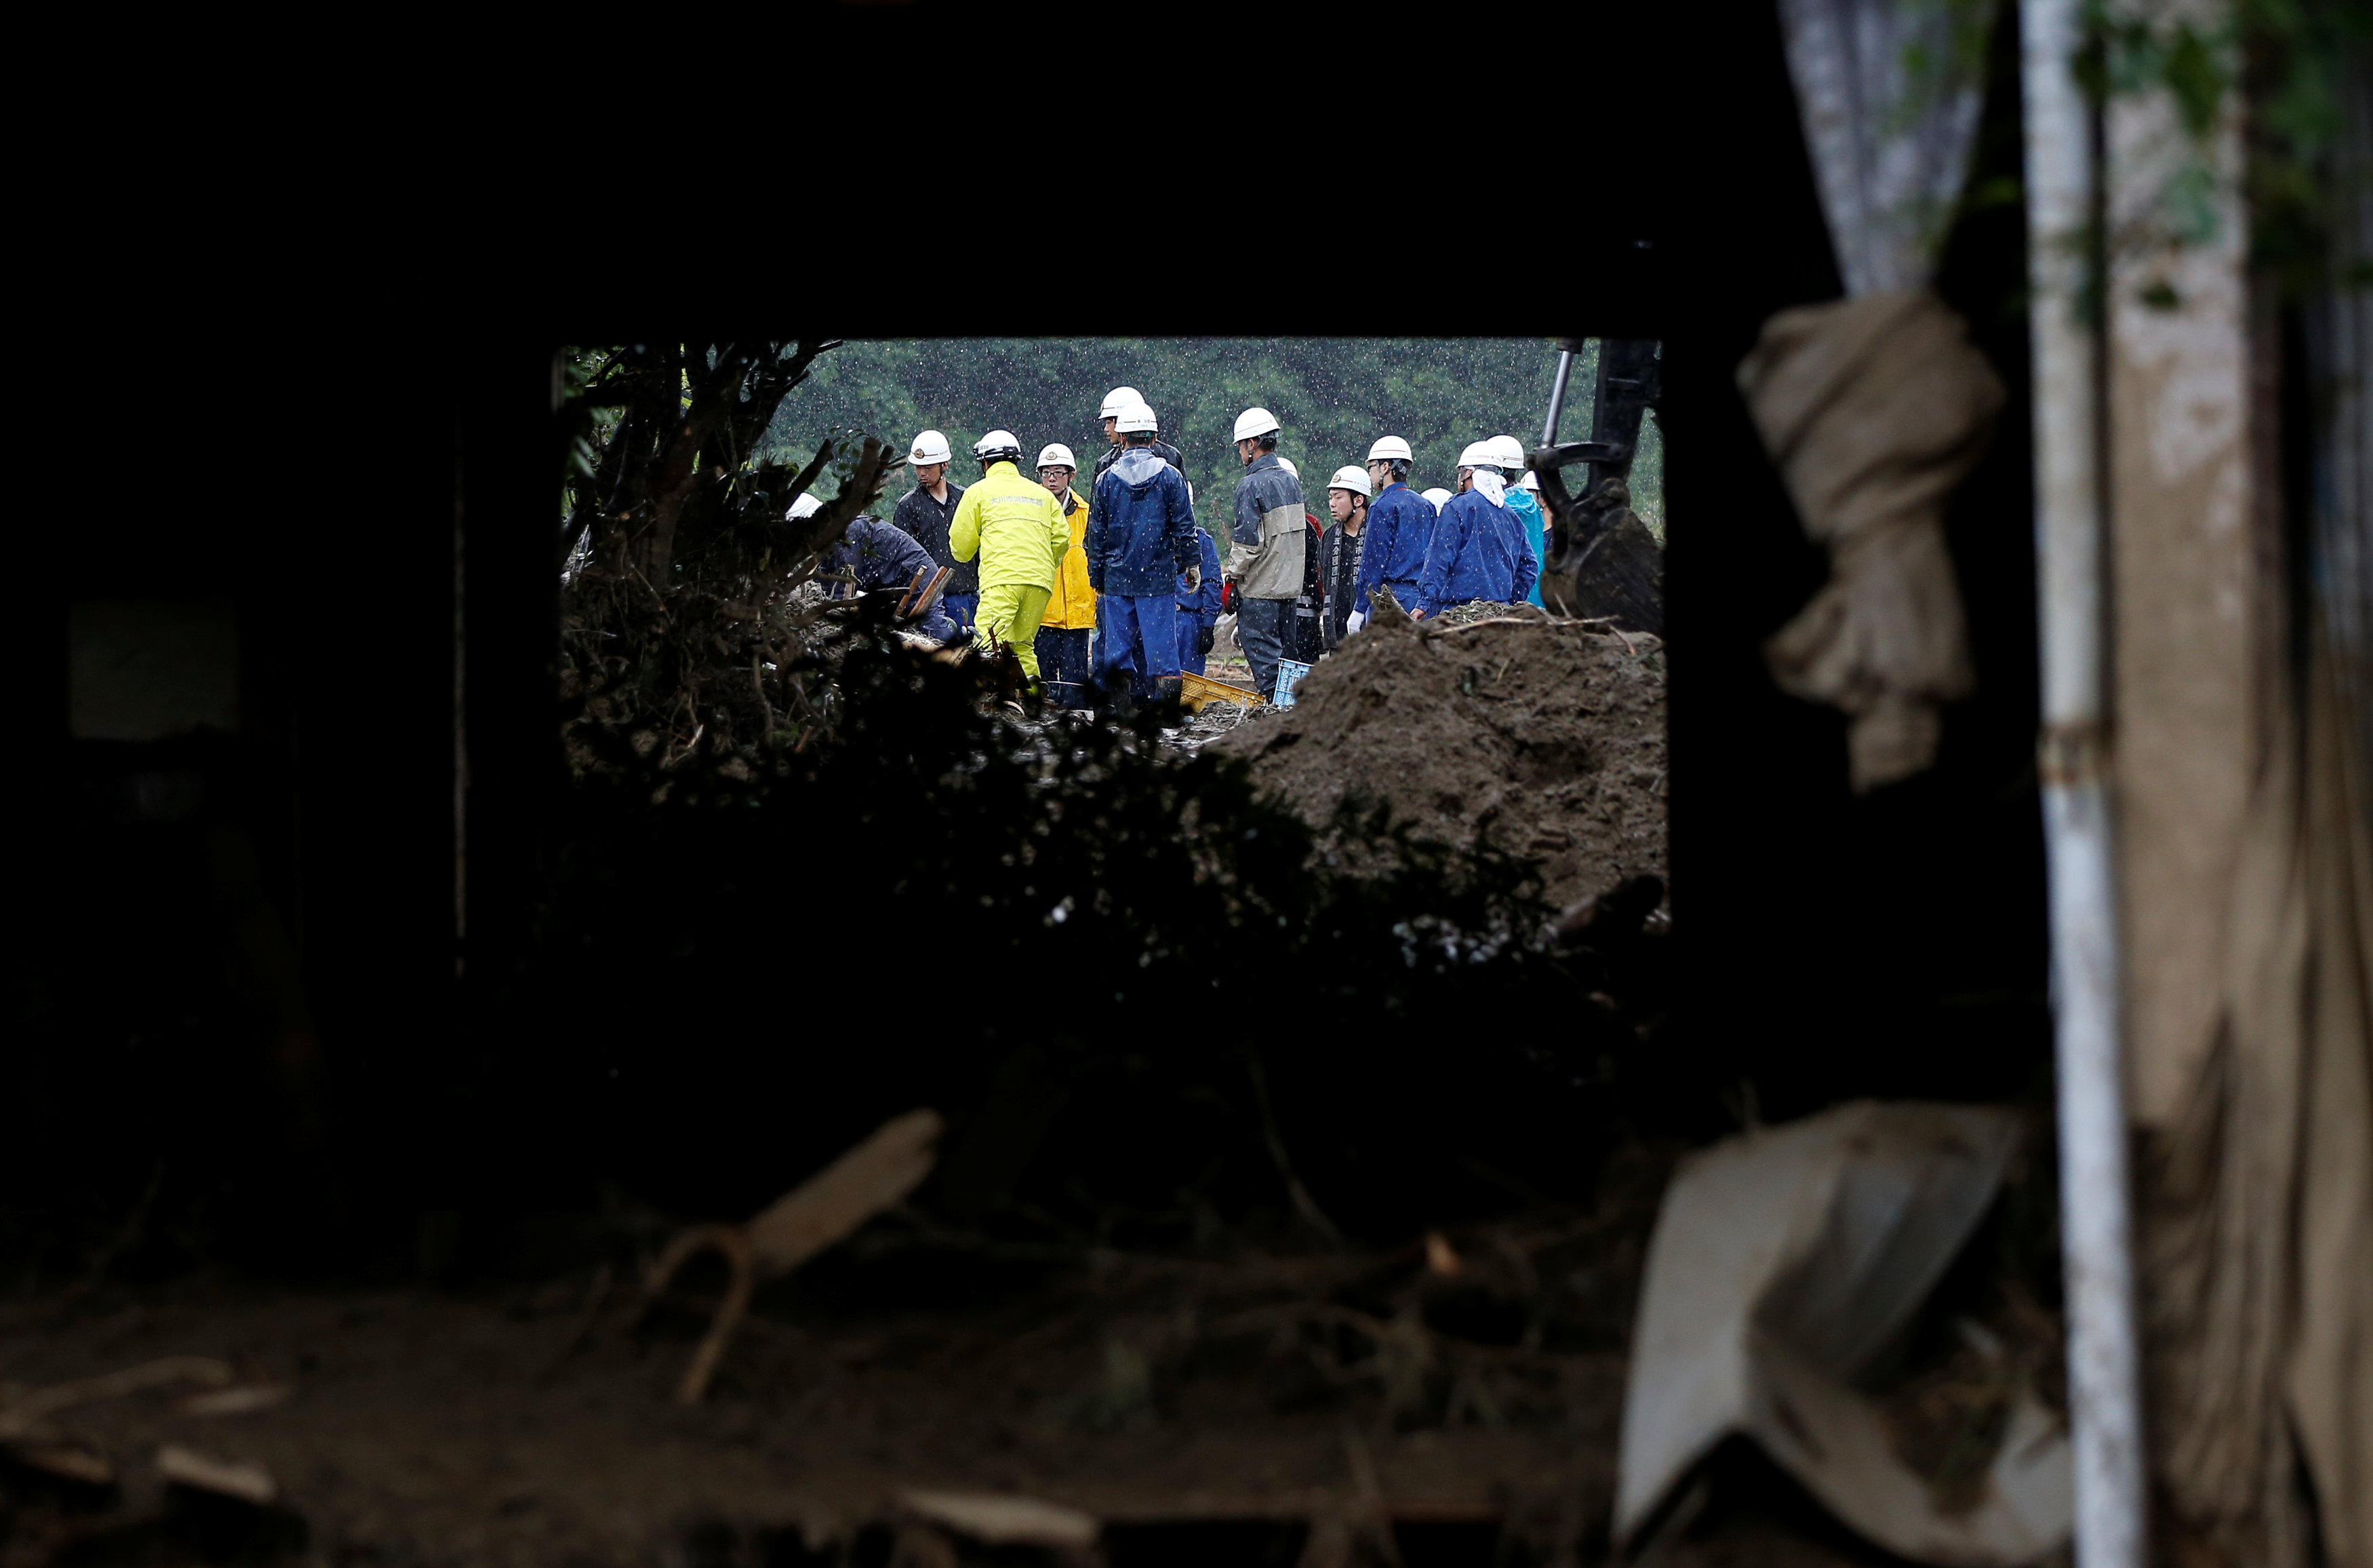 Japan rescuers continue search as more rain forecast, at least 18 dead